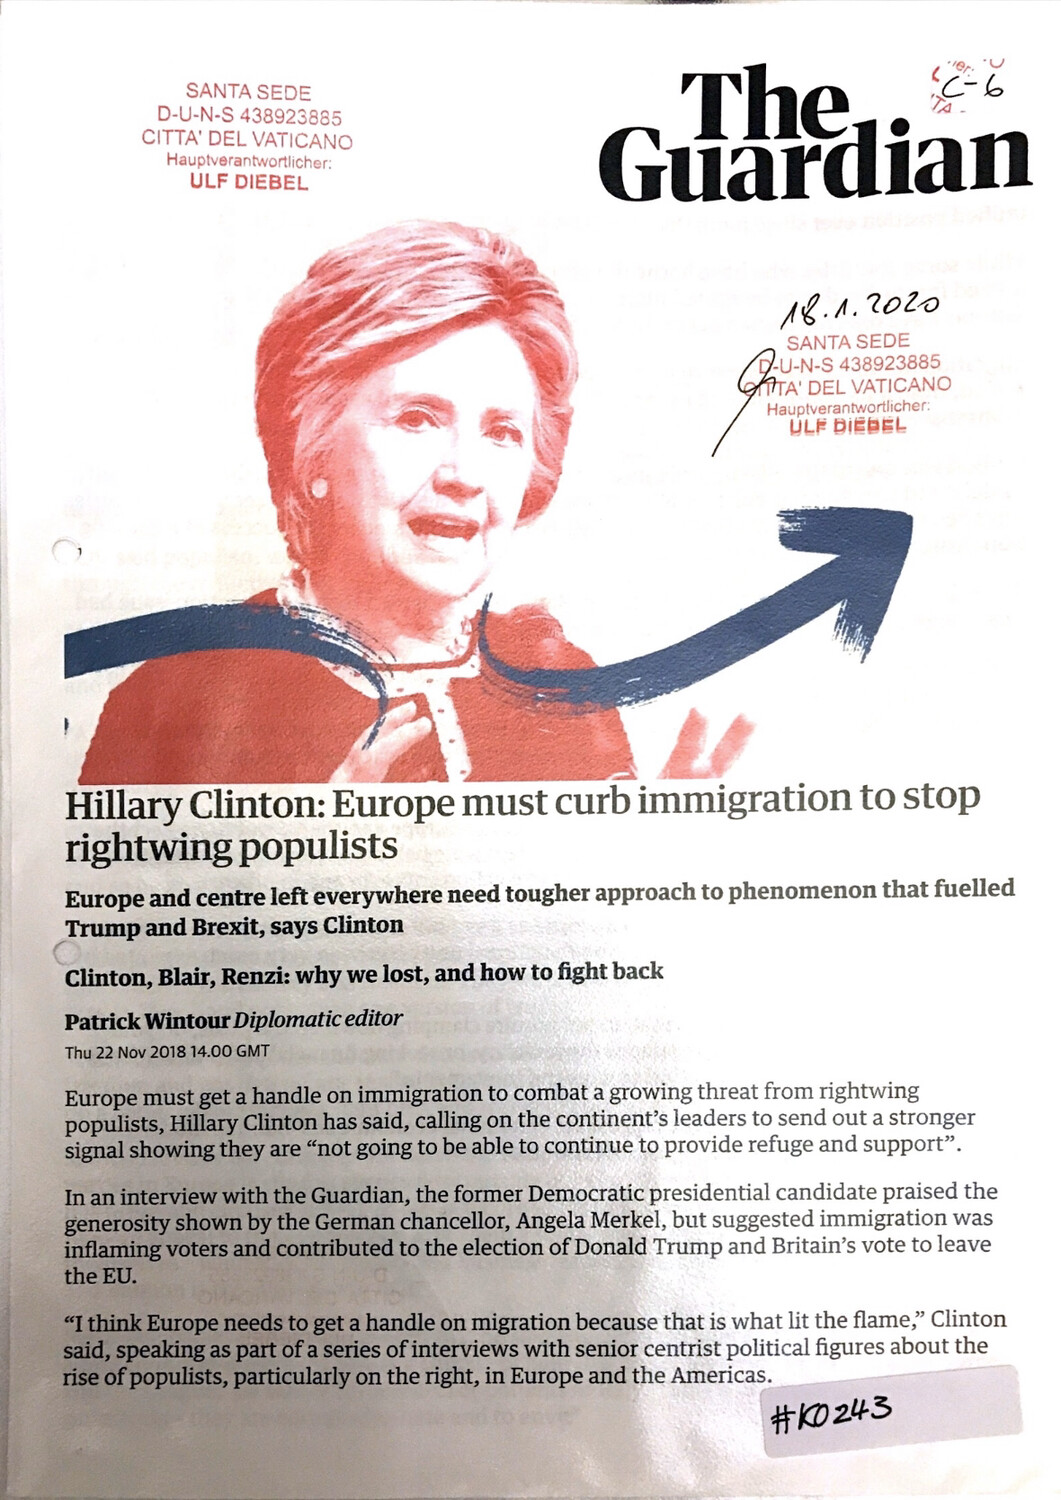 #K0243 - The Guardian - Hillary Clinton: Europe must curb immigration to stop rightwing populists